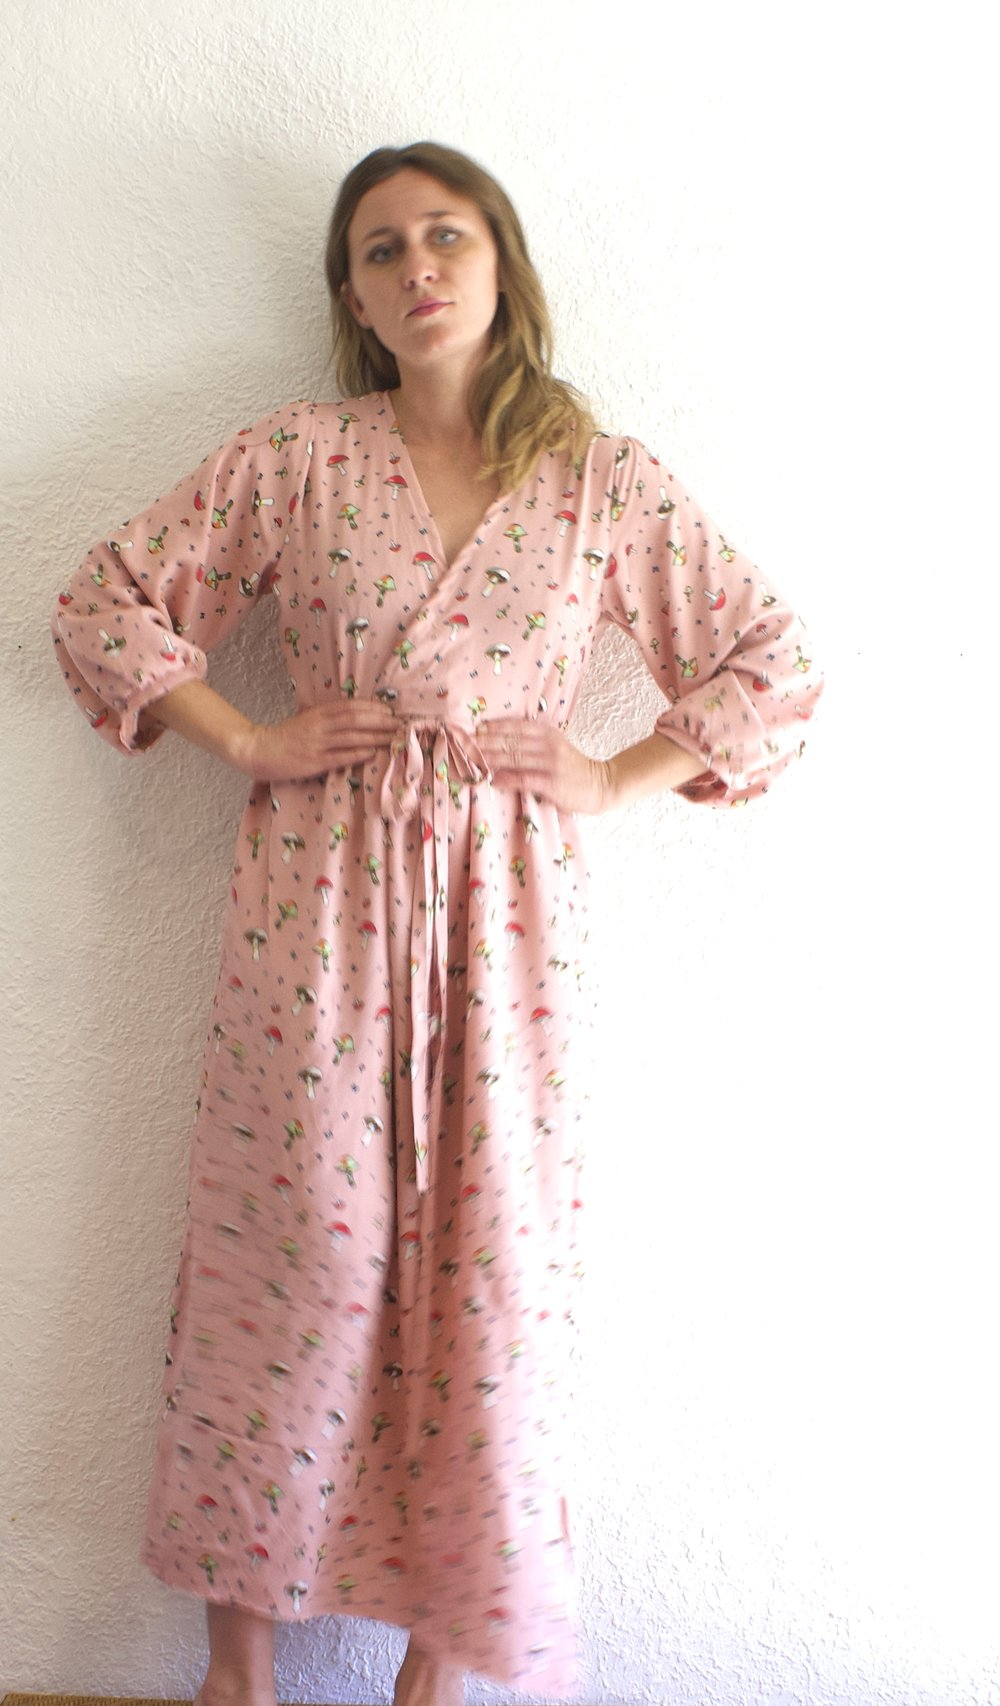 Whimsical Wrap Dress - $80